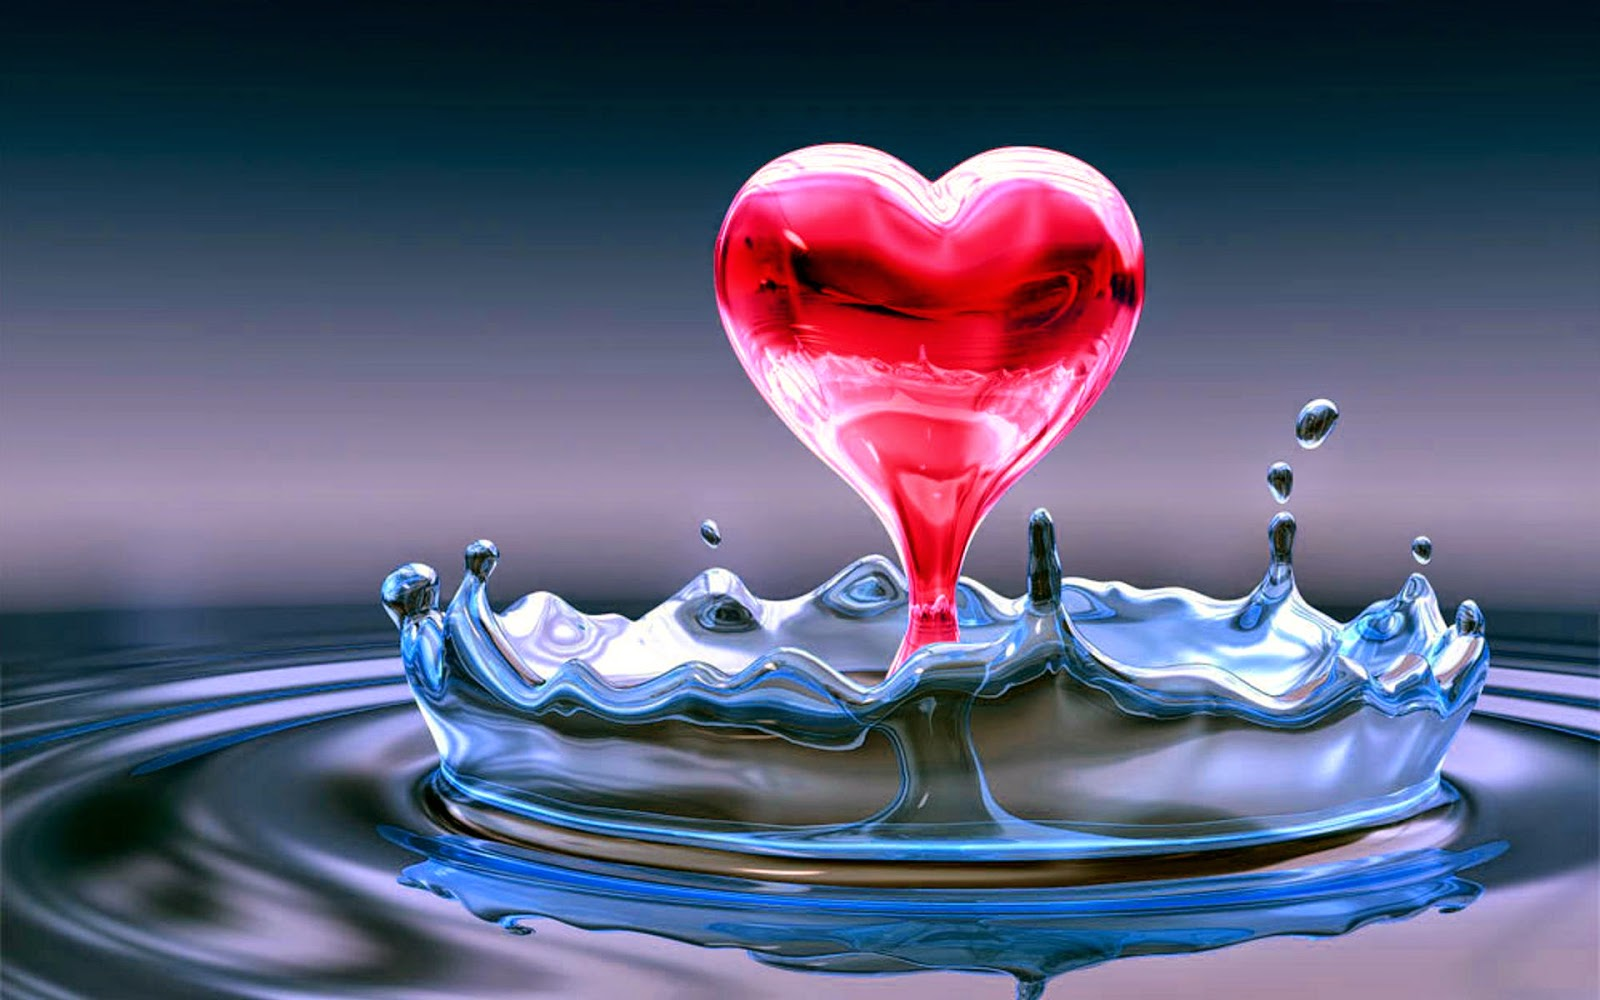 hearts-falling-in-water-hd-wallpaper